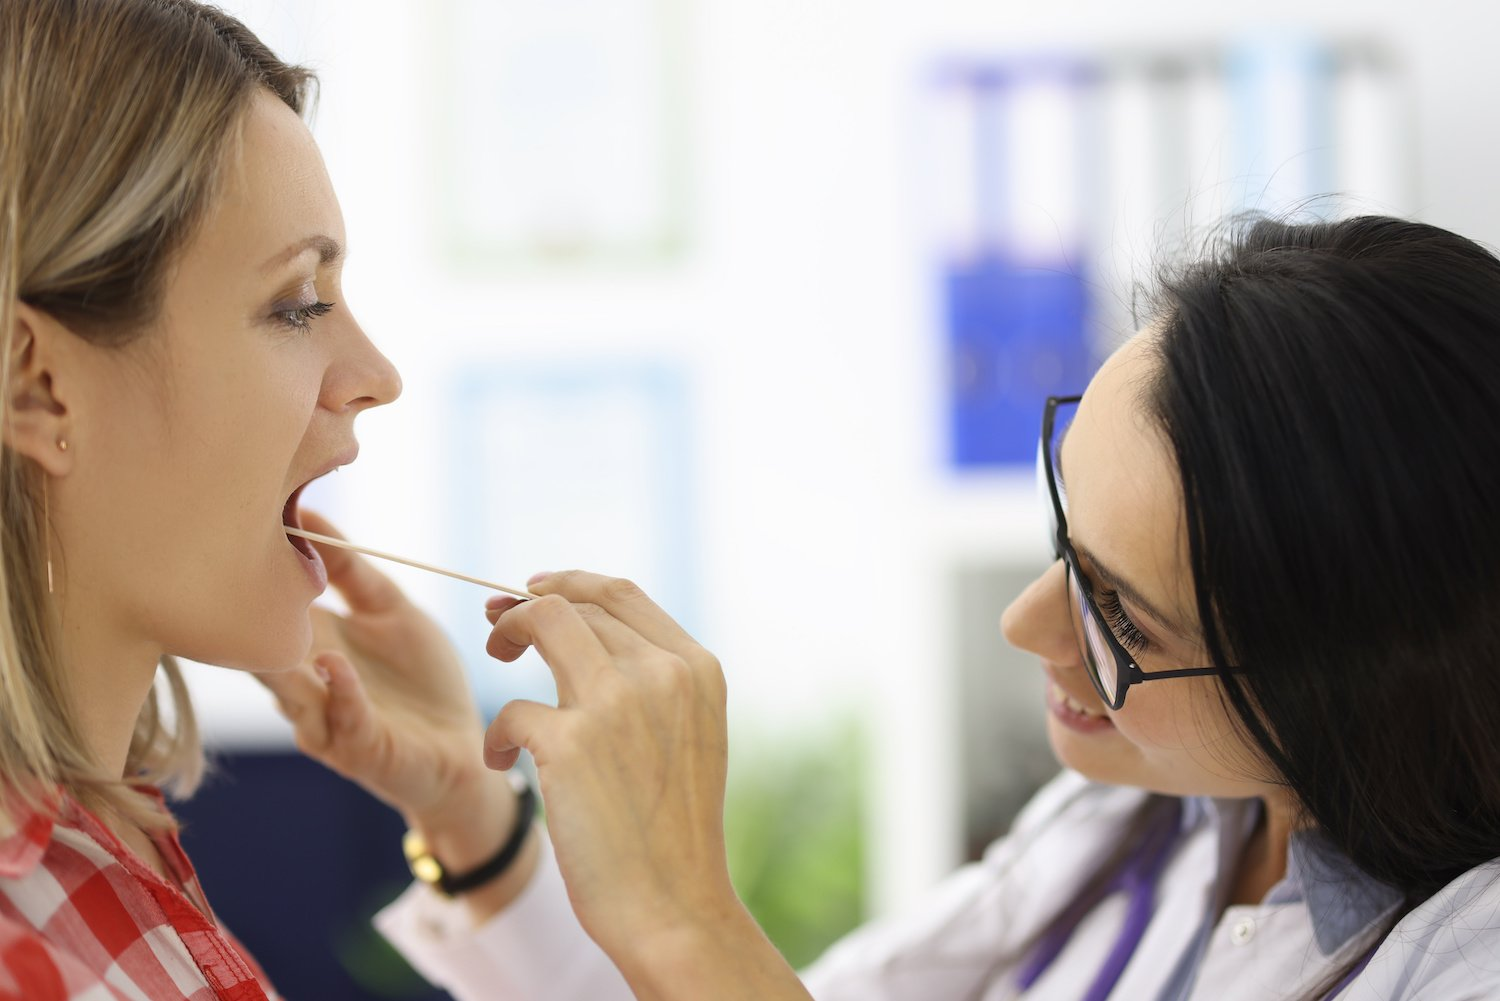 LPR treatment: Doctor checking a patient's throat using a wooden spatula